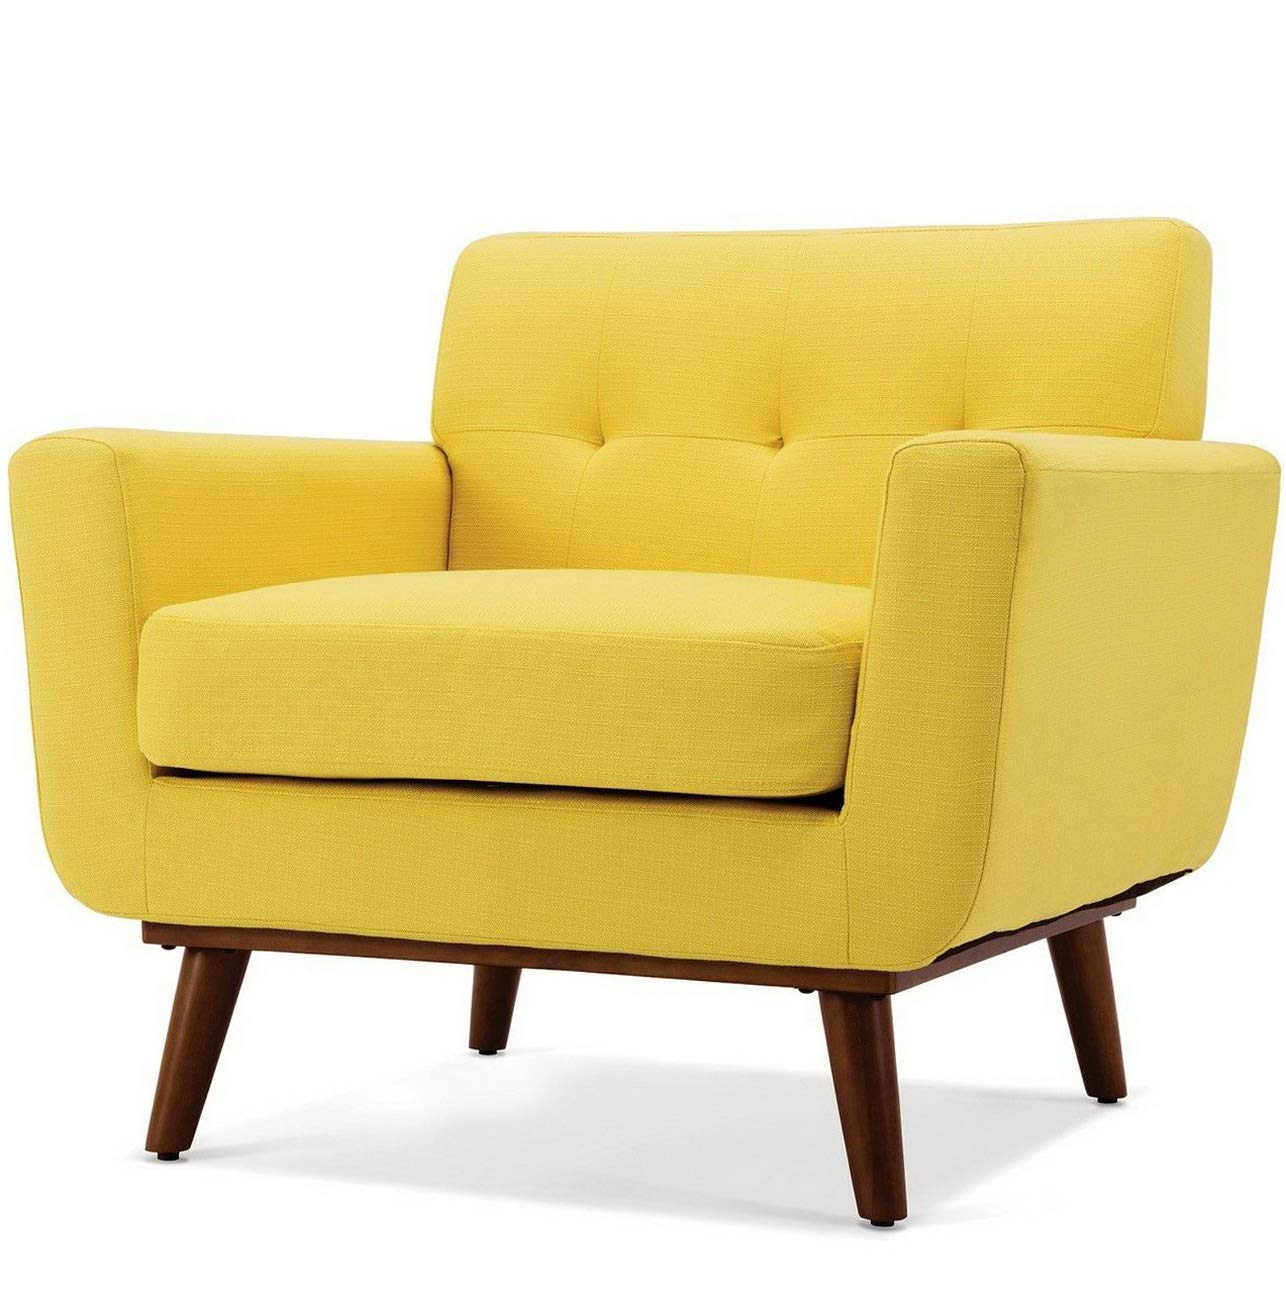 Amazon.com: Hebel Mid-Century Isaiah Upholstered Accent Arm Living Room Chair | Model CCNTCHR - 476 |: Kitchen & Dining